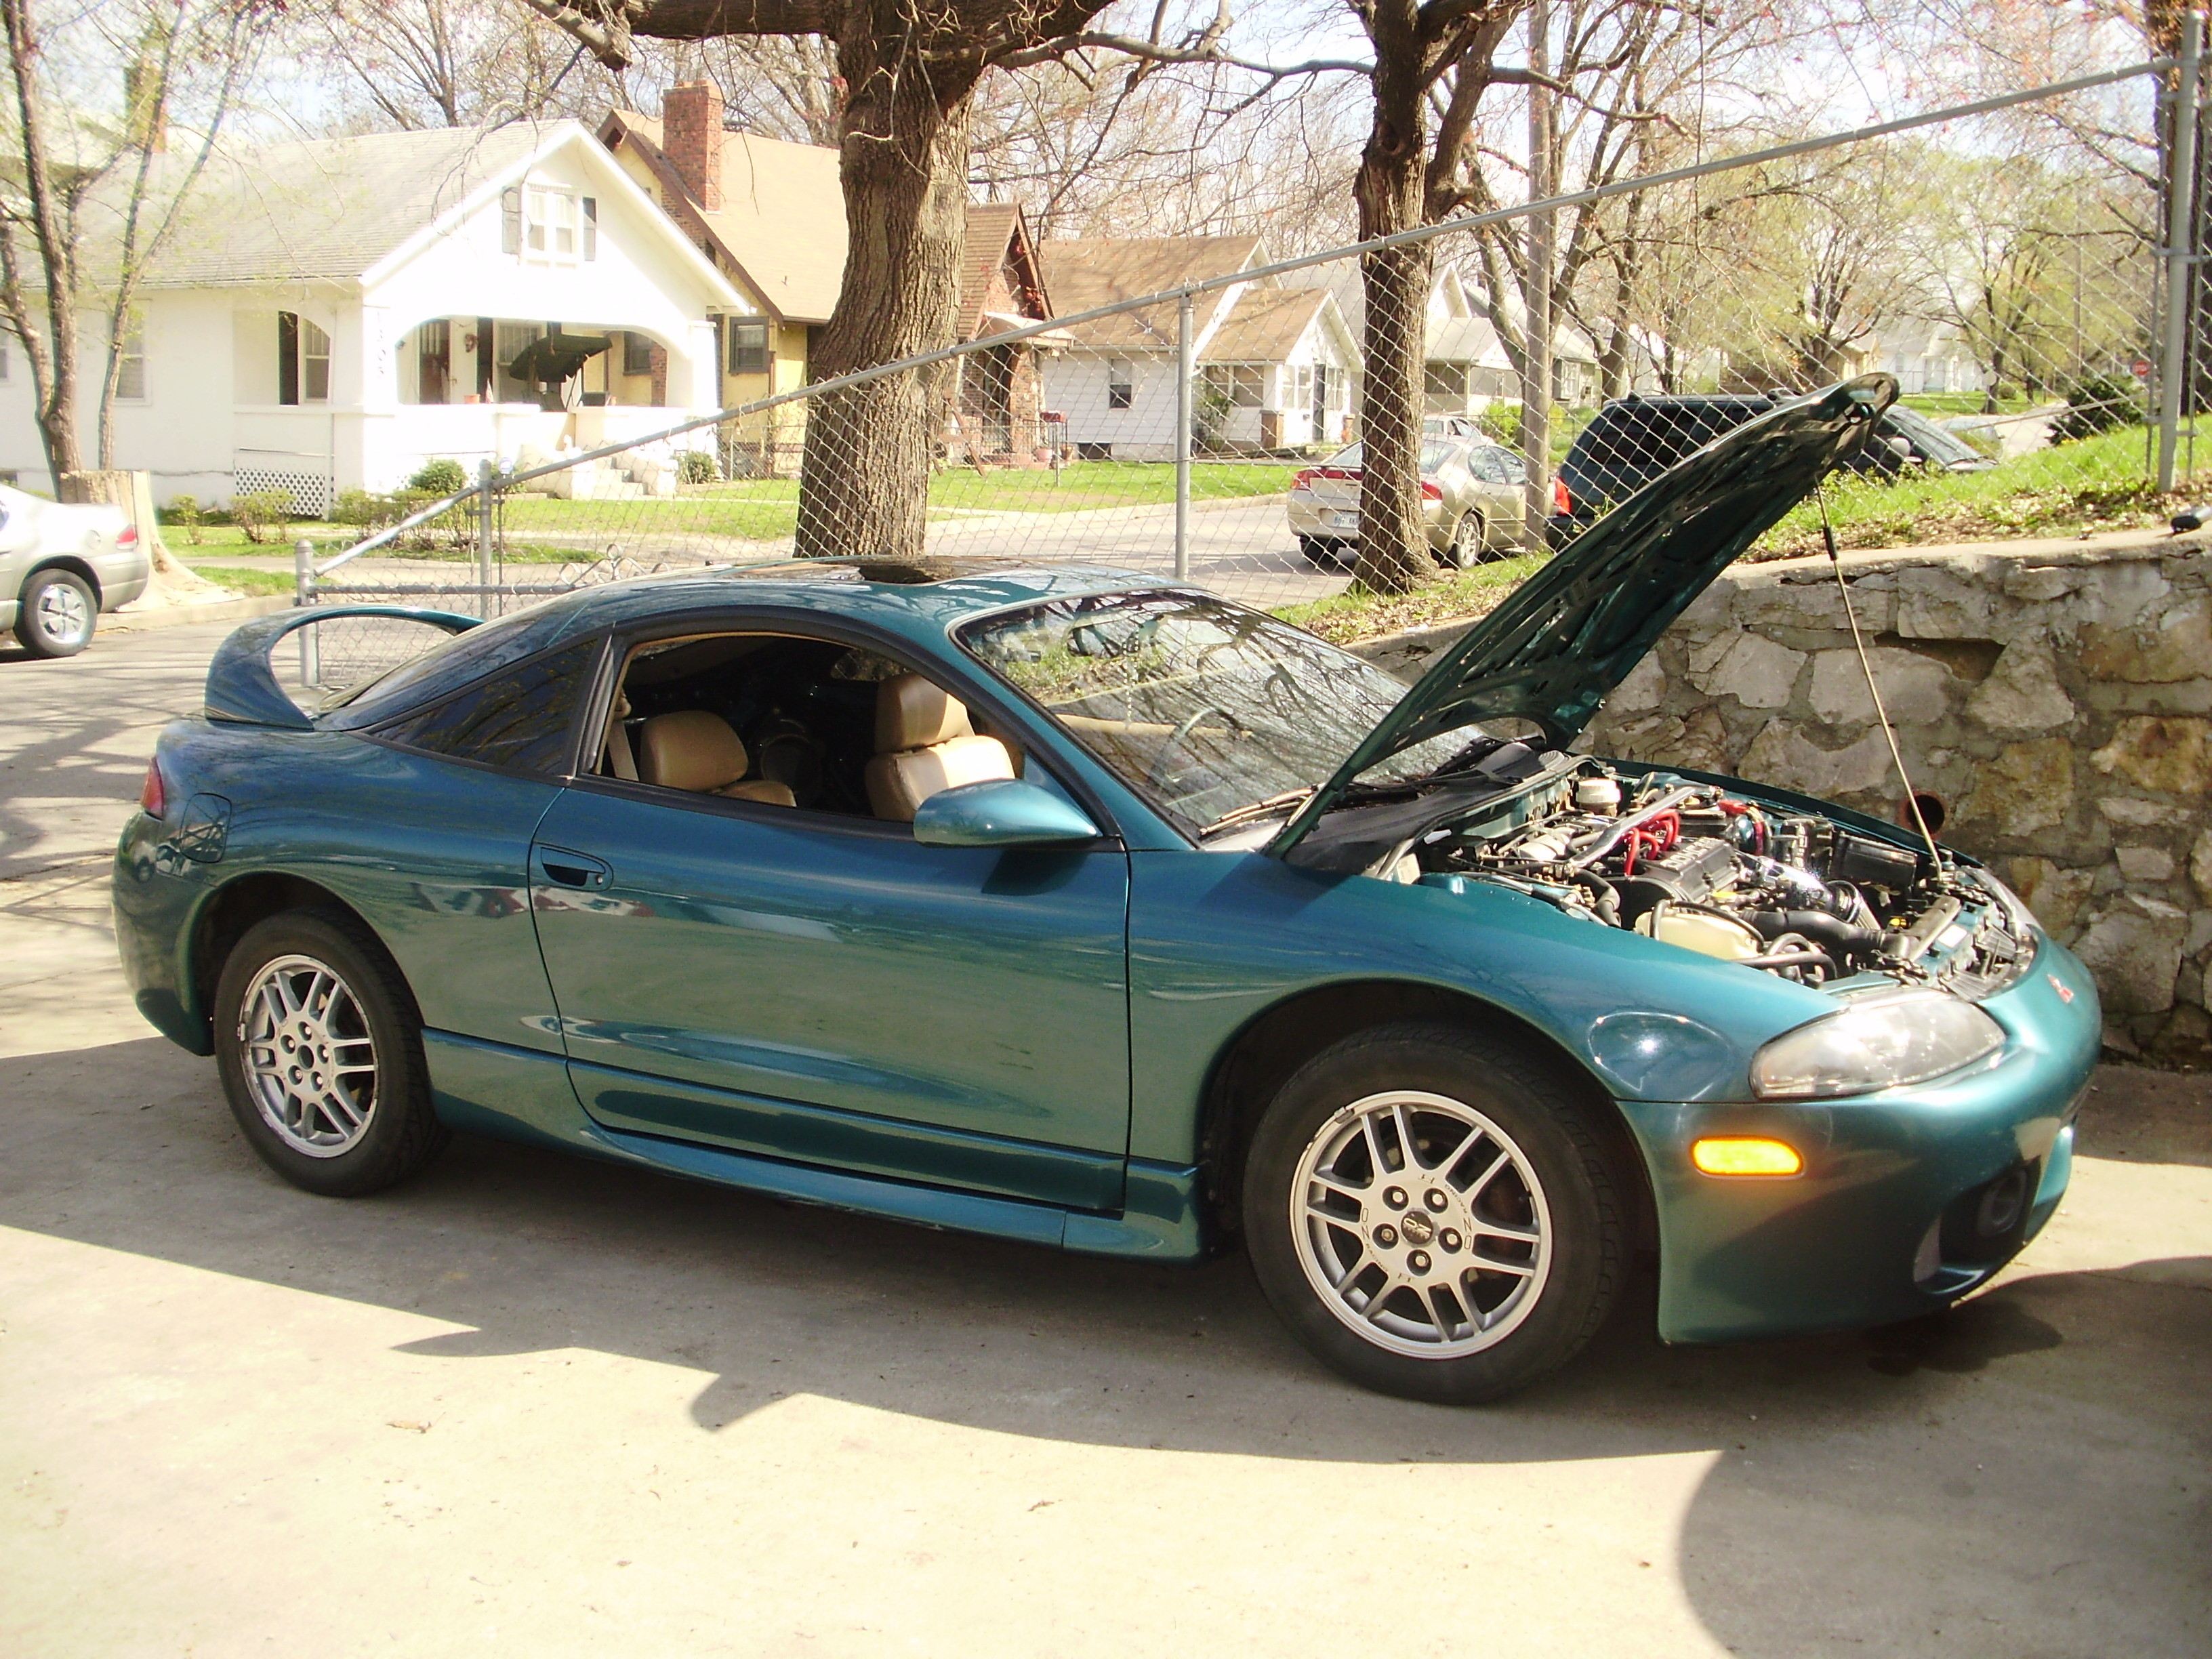 axrxp 39 s 1999 mitsubishi eclipse in kansas city ks. Black Bedroom Furniture Sets. Home Design Ideas